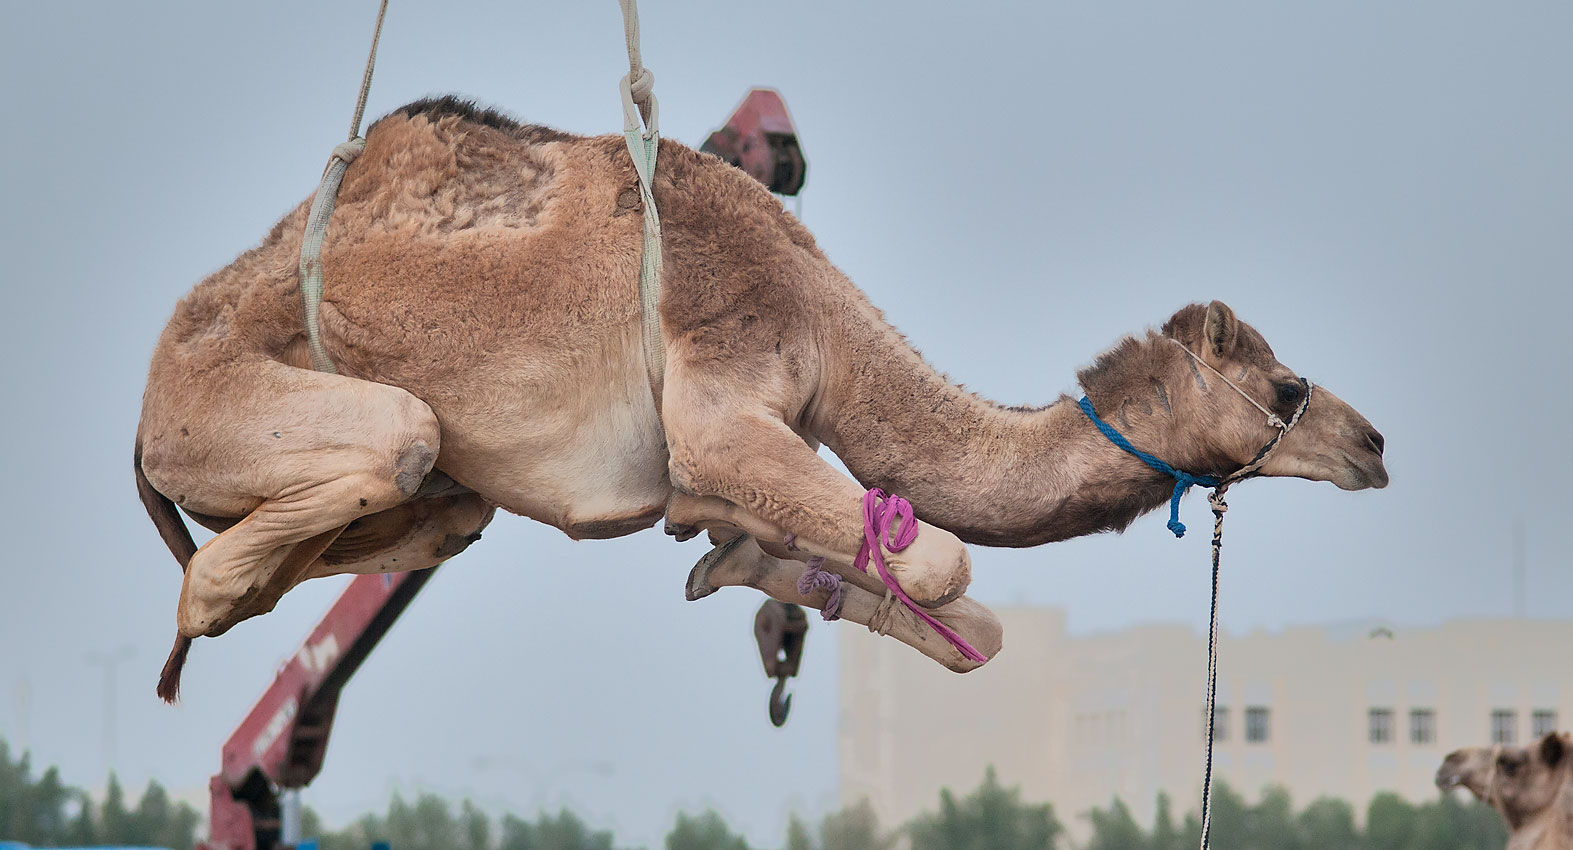 Camel lifted by a crane in Wholesale Animal Market. Doha, Qatar